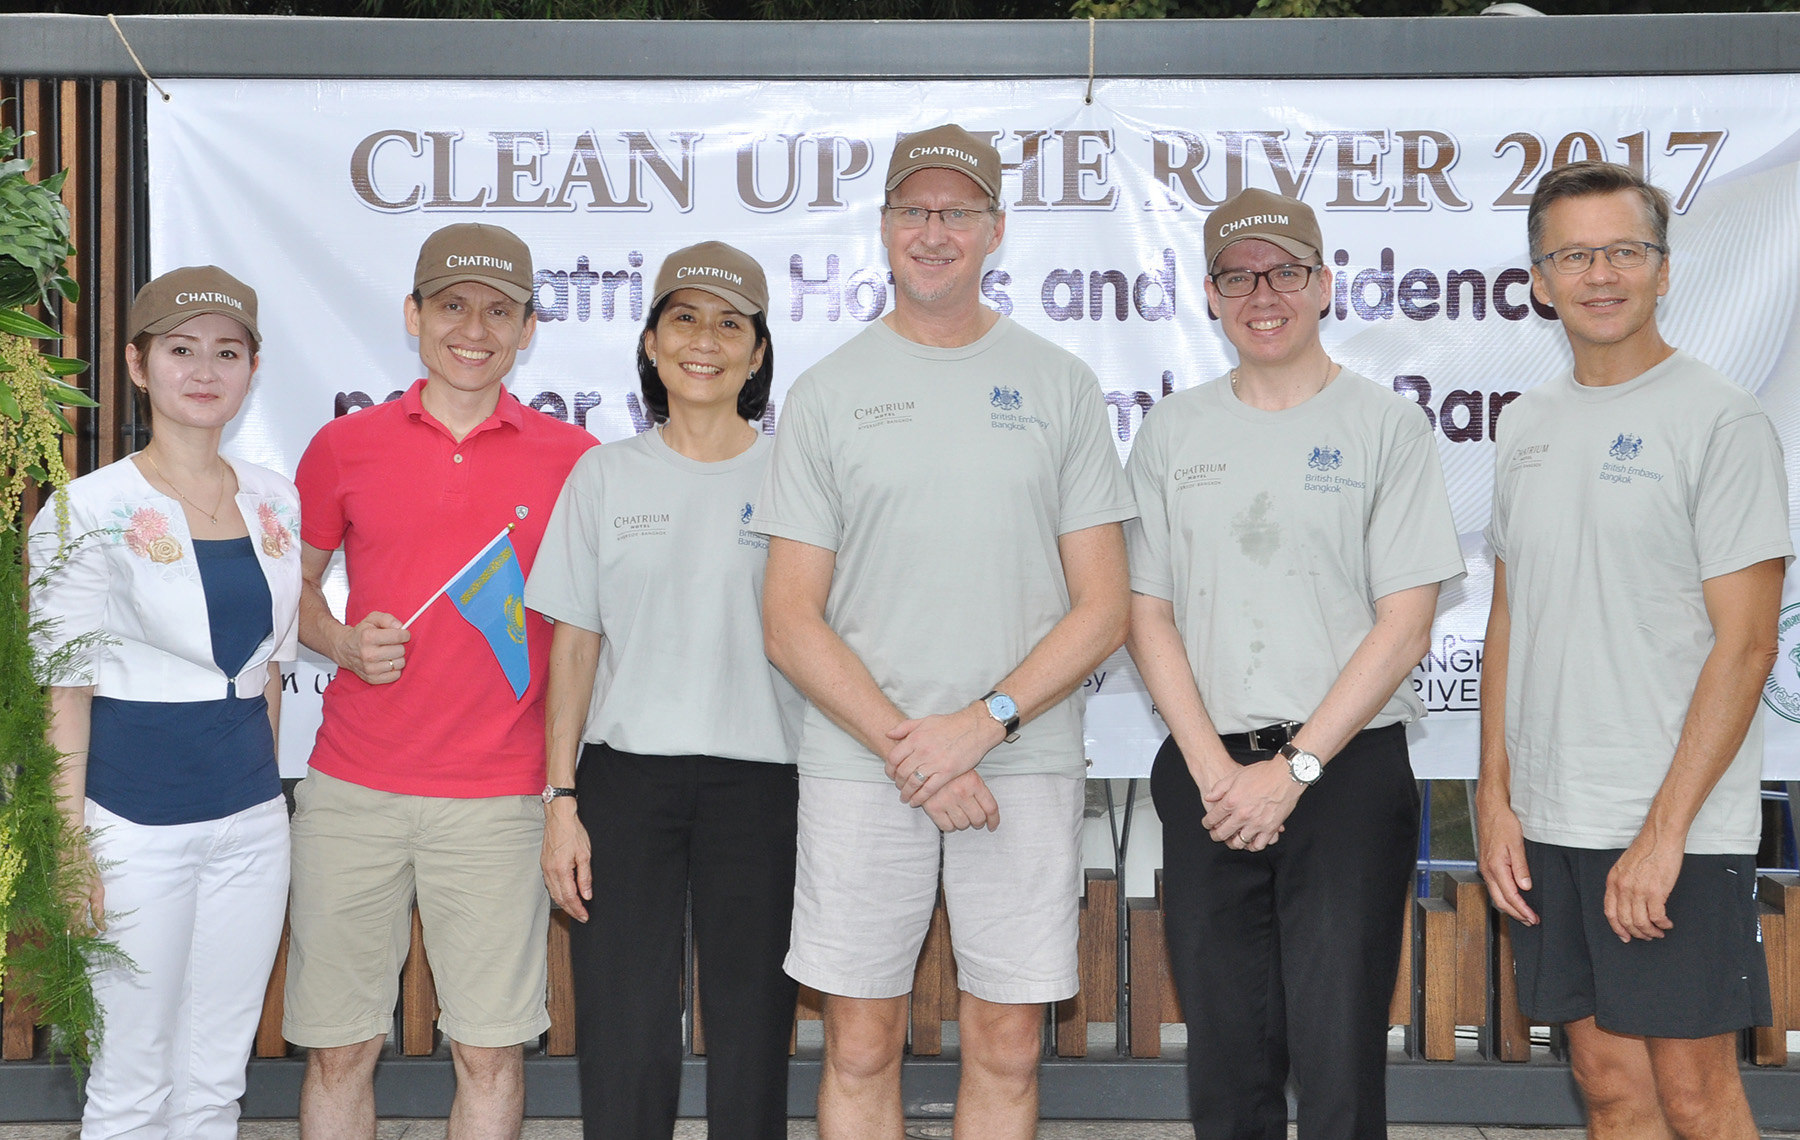 Clean Up the River 2017 at Chatrium Hotel Riverside Bangkok